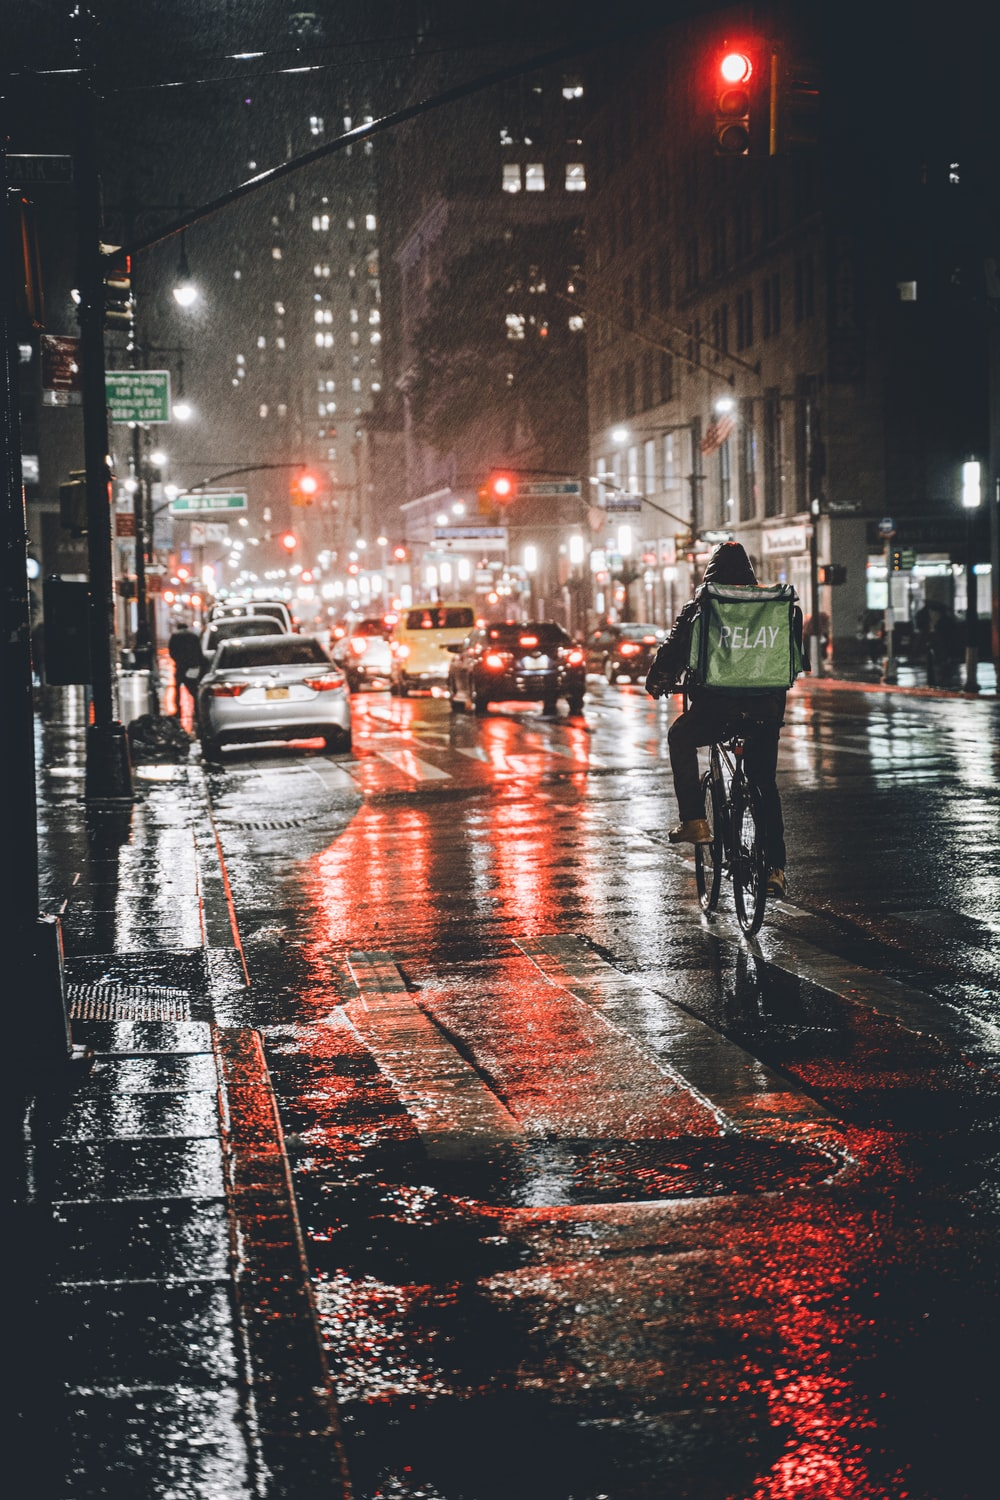 man in green jacket and black pants walking on street during night time